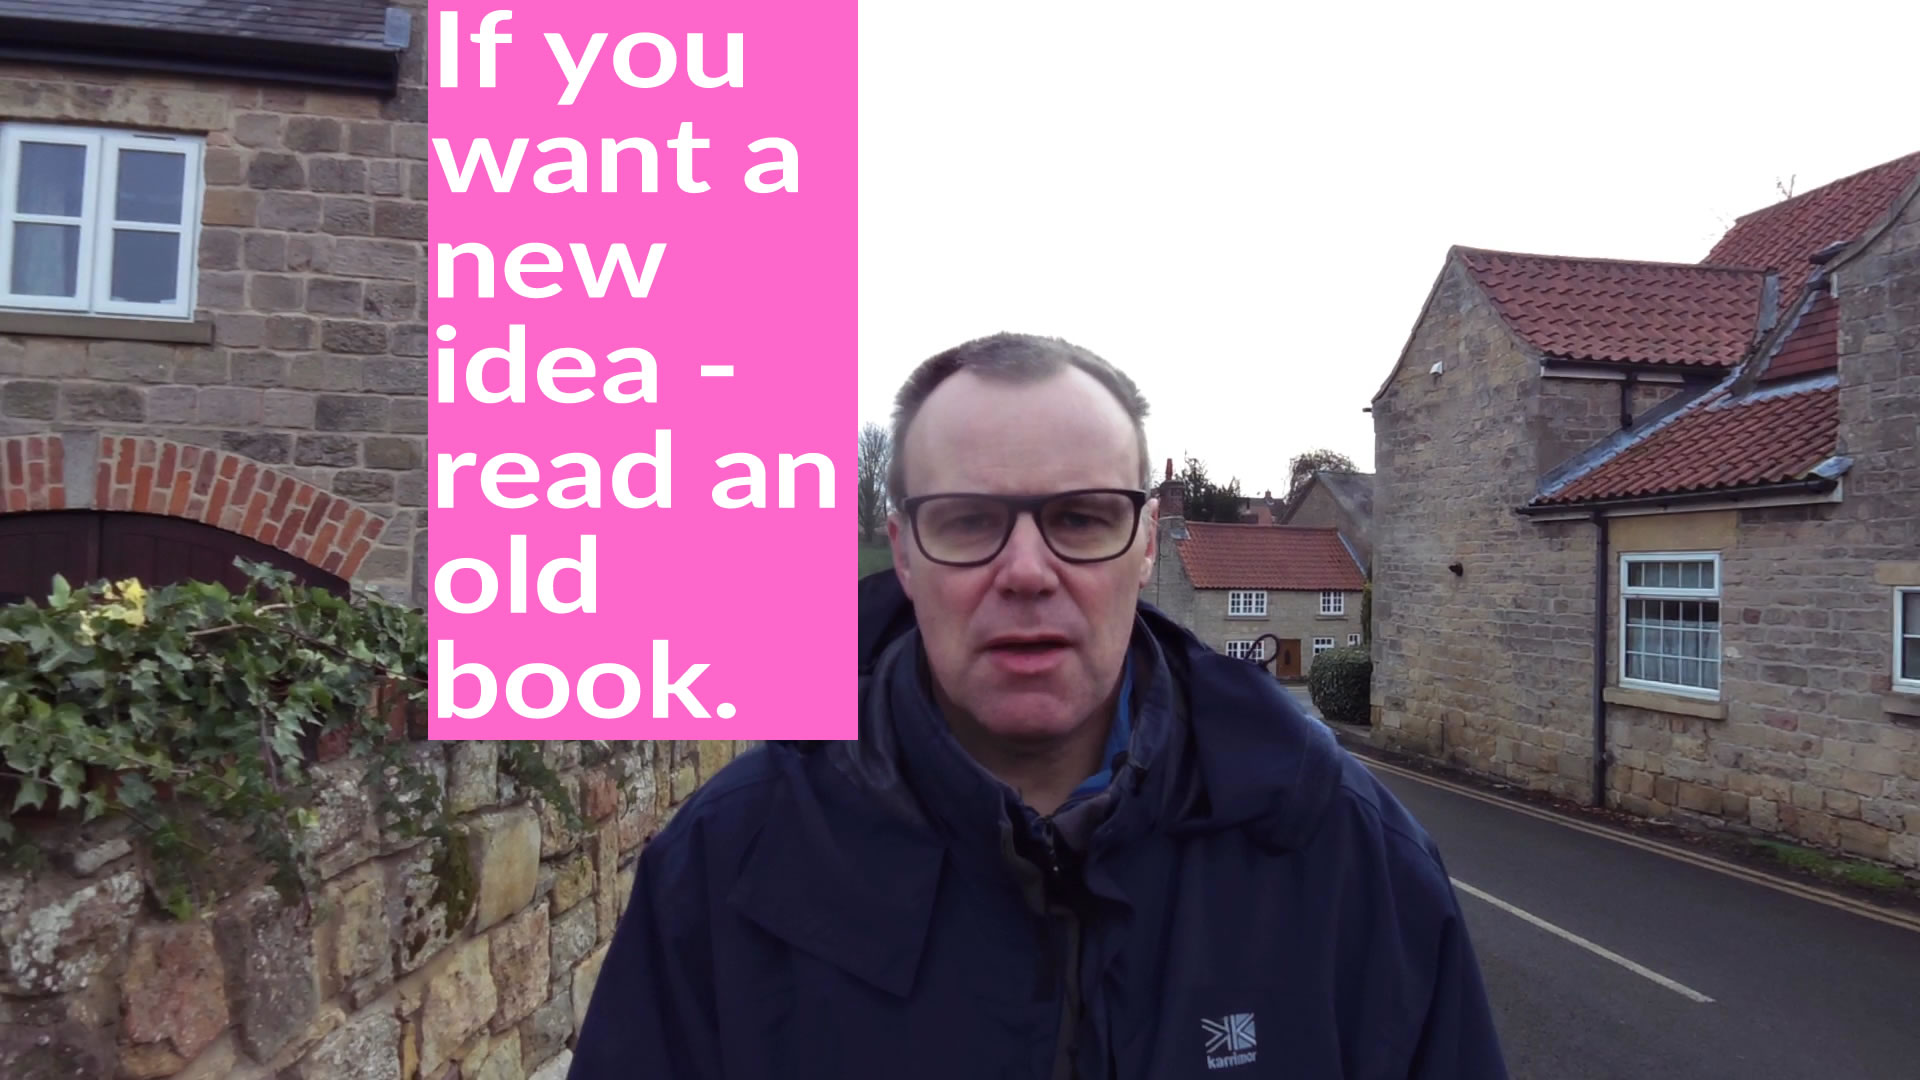 if you want a new idea - read an old book